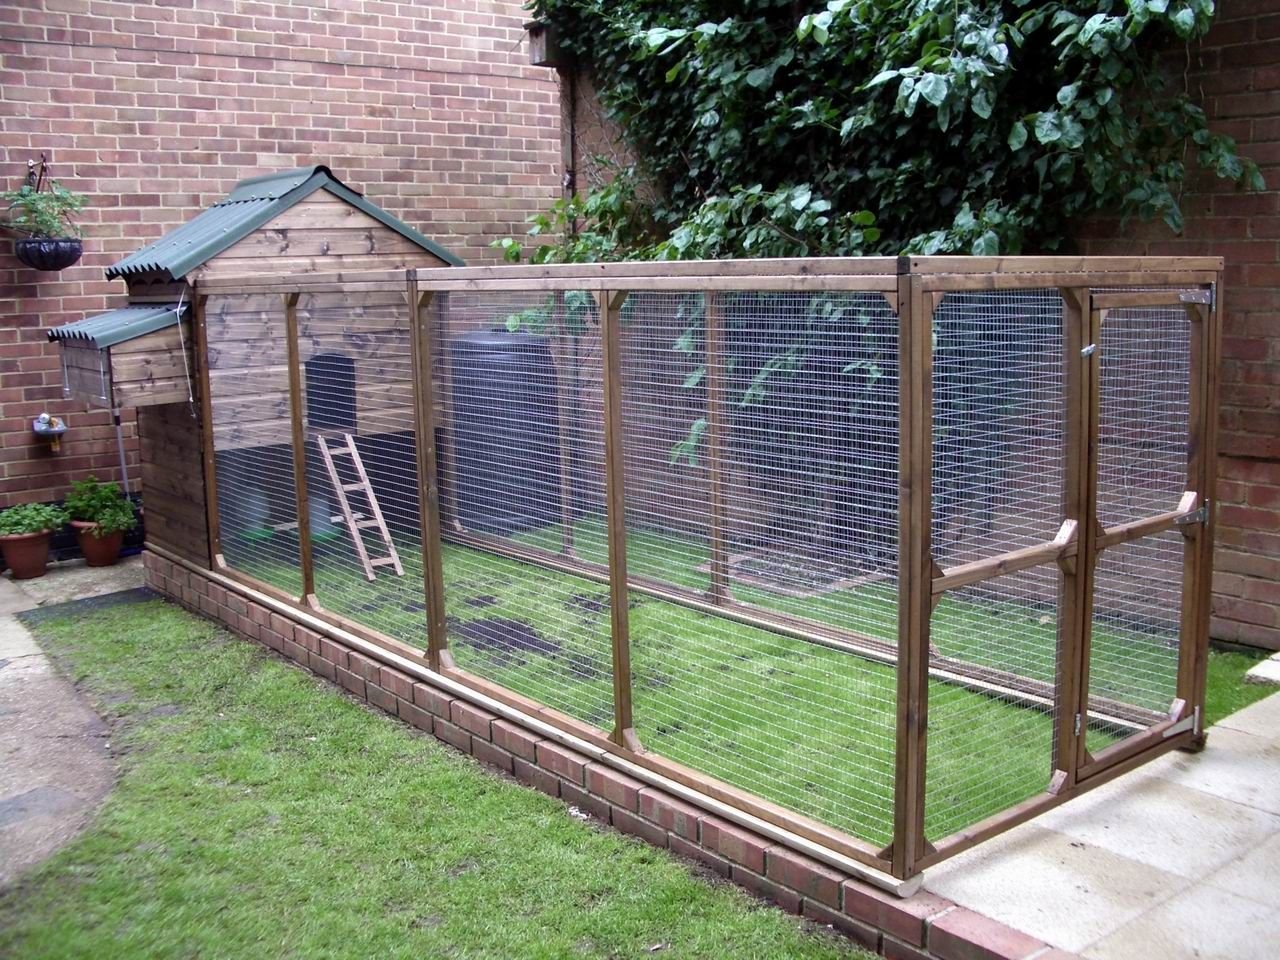 William chicken house and chicken run with fully boarded for Chicken coop size for 6 chickens